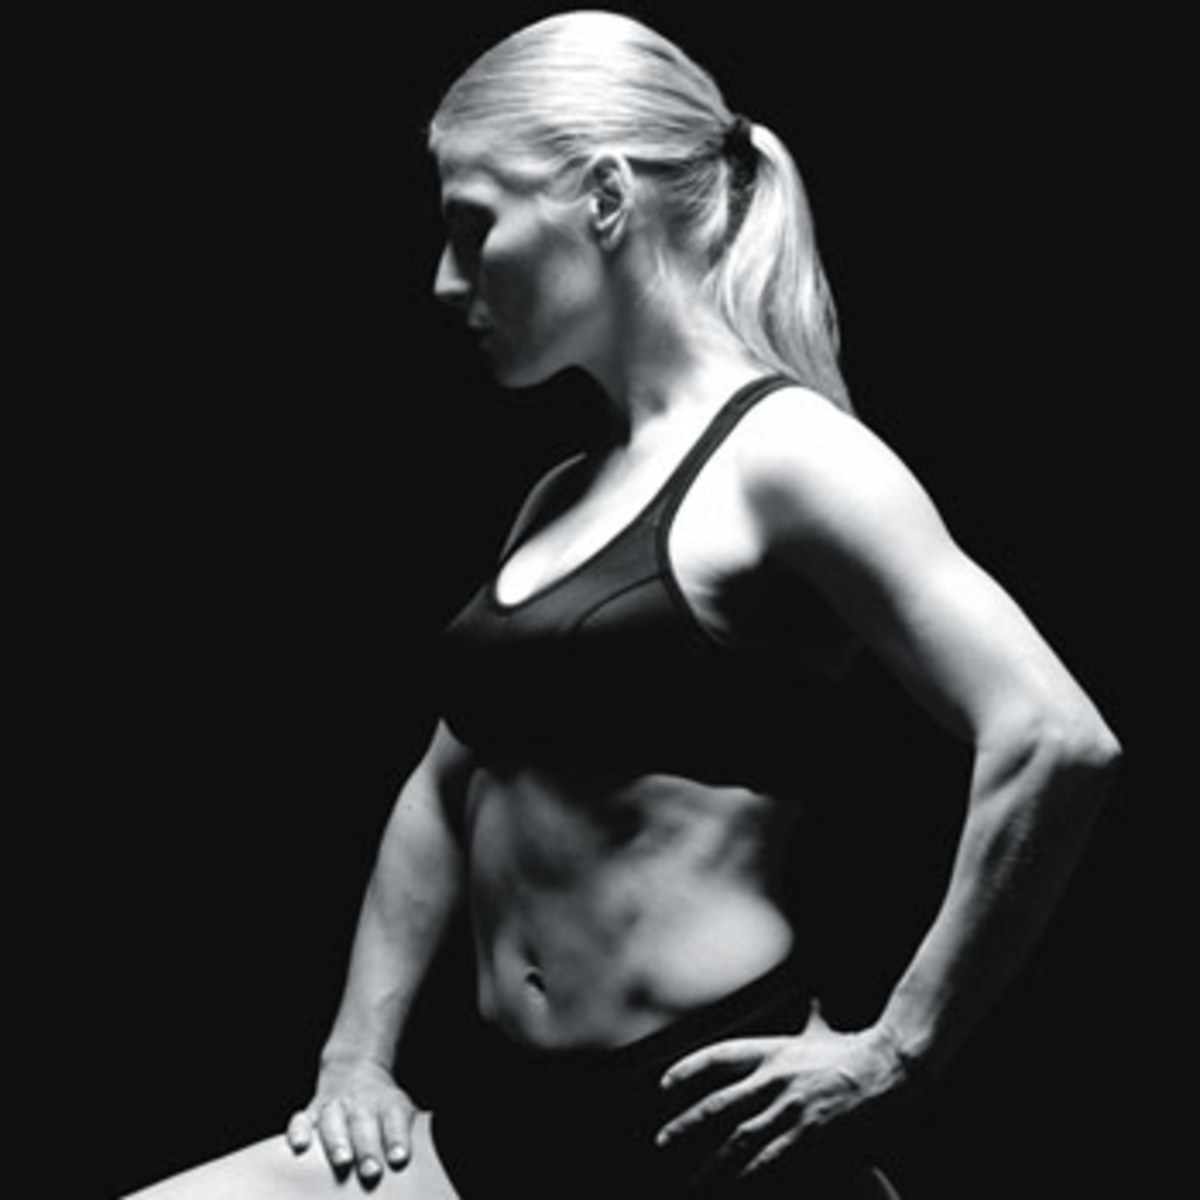 Dreya Webber, one of the exercise leaders & a Cirque du Soleil performer.